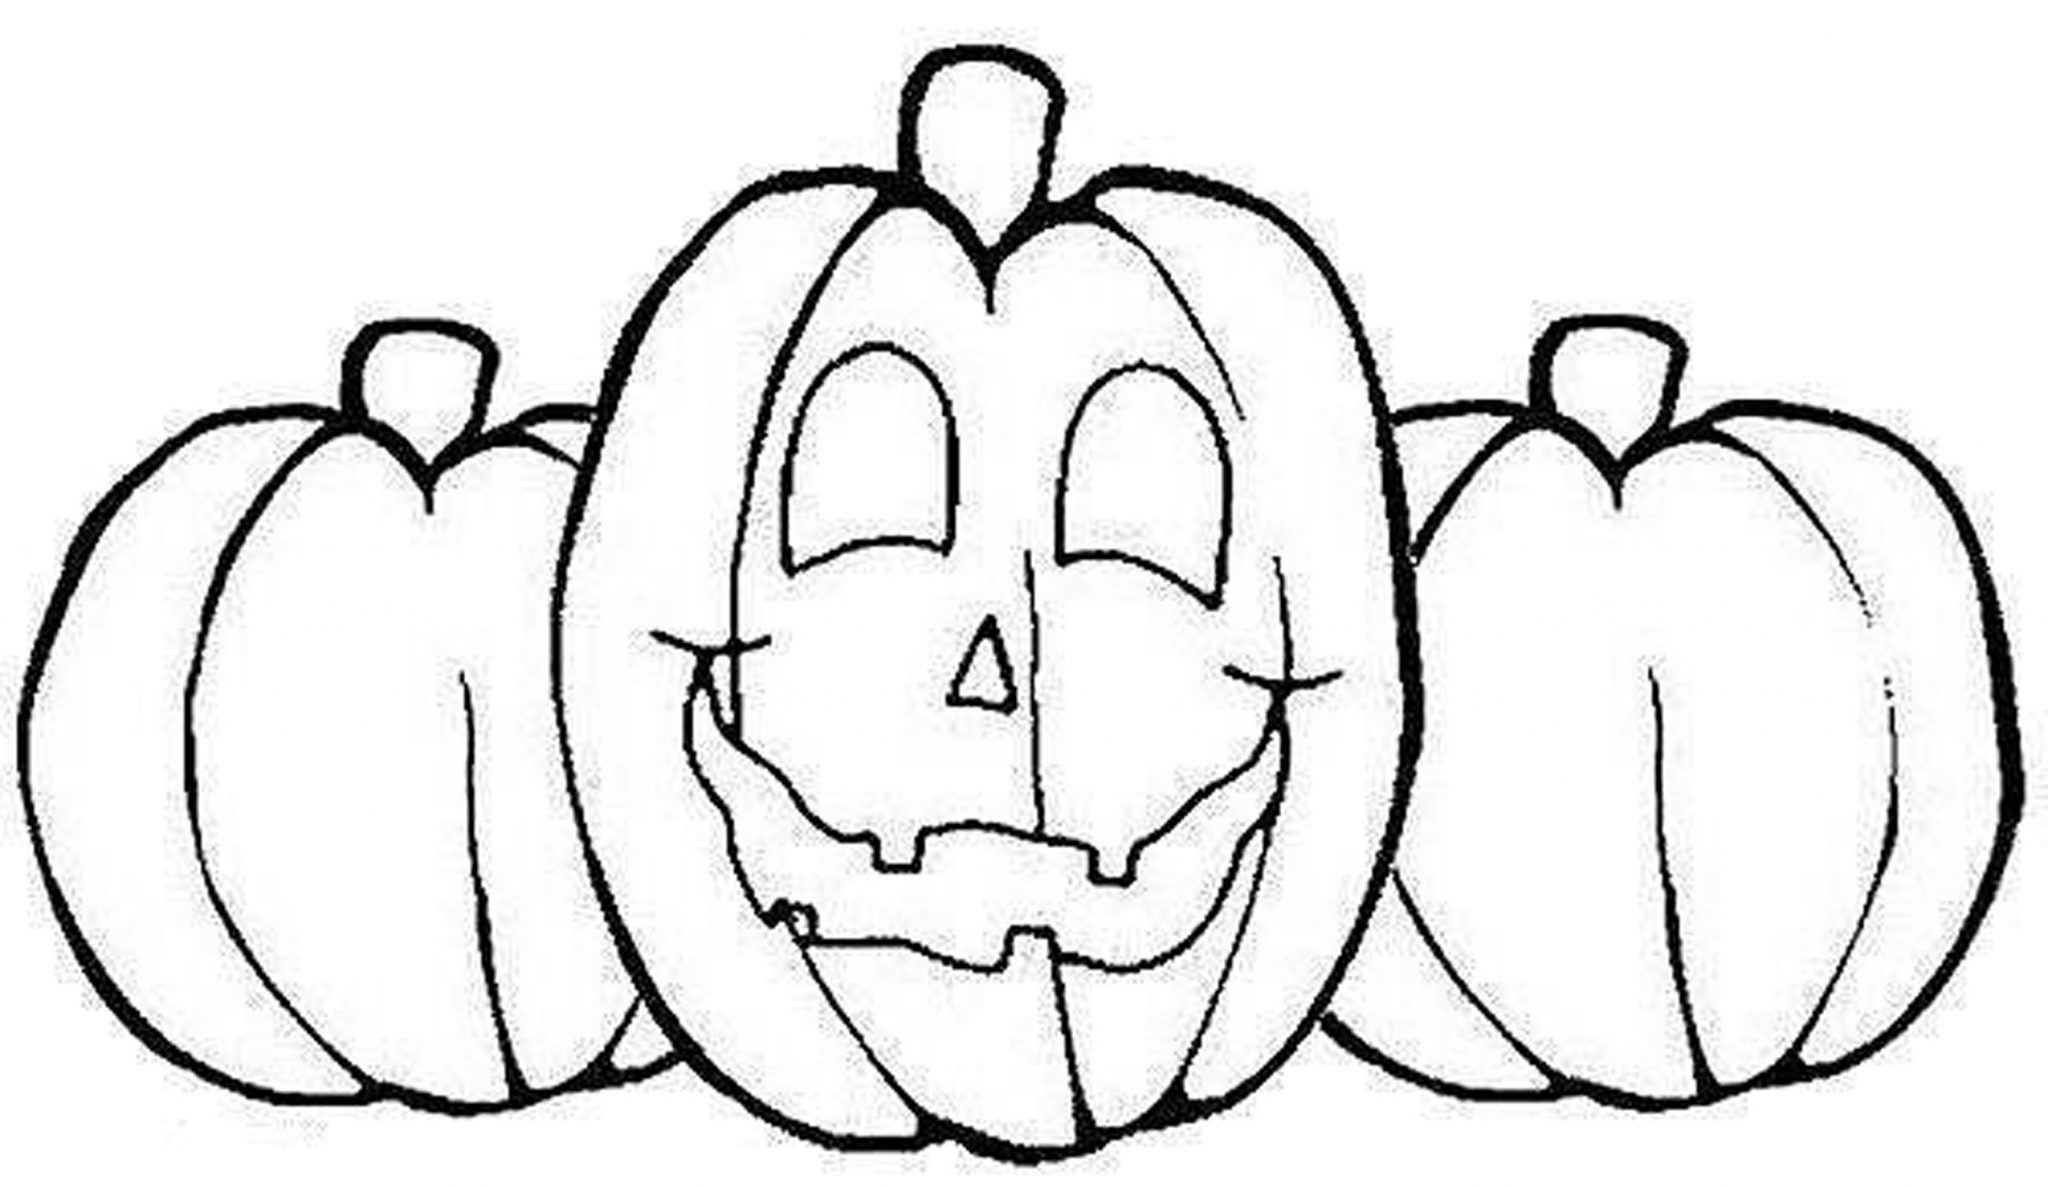 coloring pages of a pumpkin printable pumpkin coloring page for kids 4 supplyme pumpkin a coloring of pages